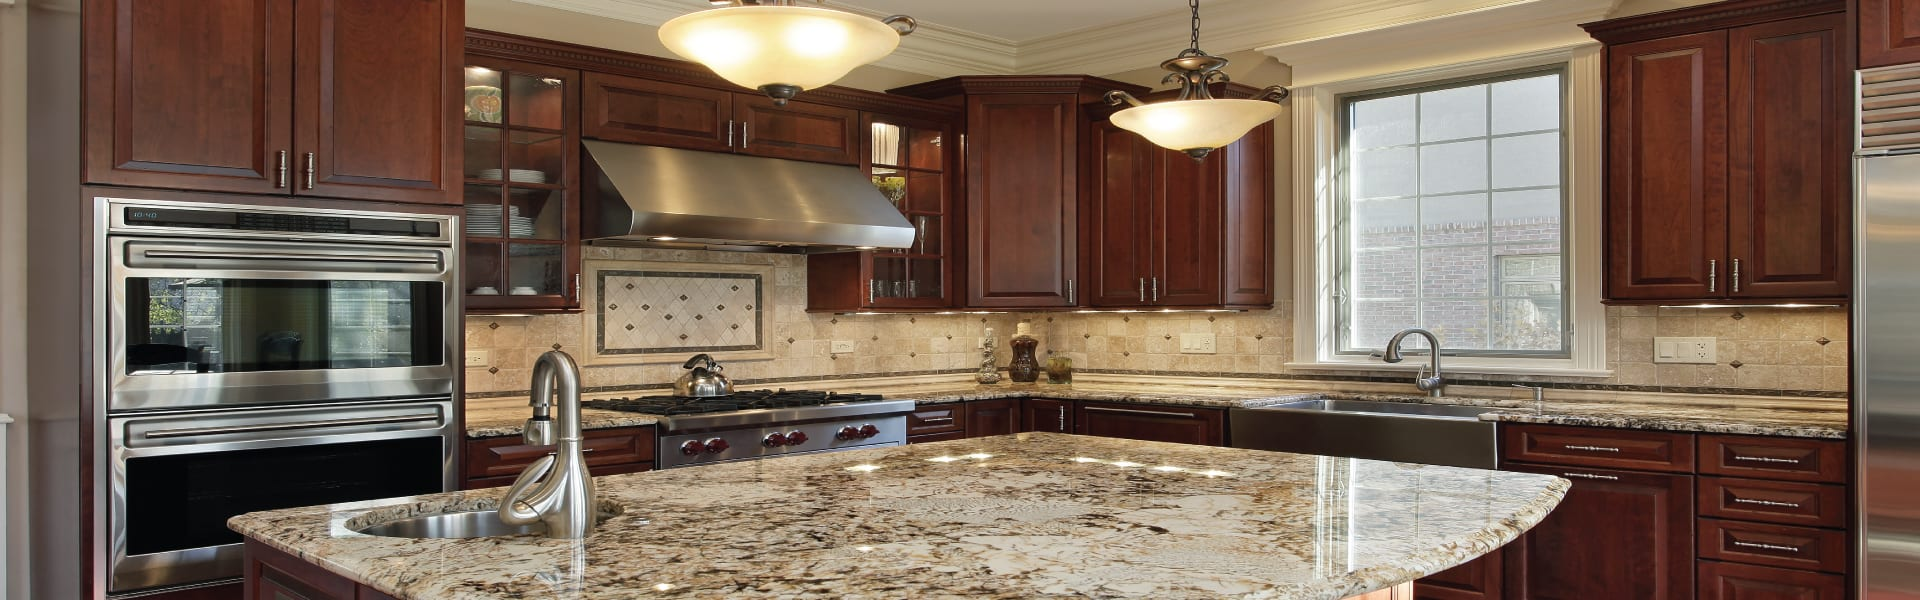 Kitchen Tile Visualizer Standard Tile Best Of Houzz 2019 Winner